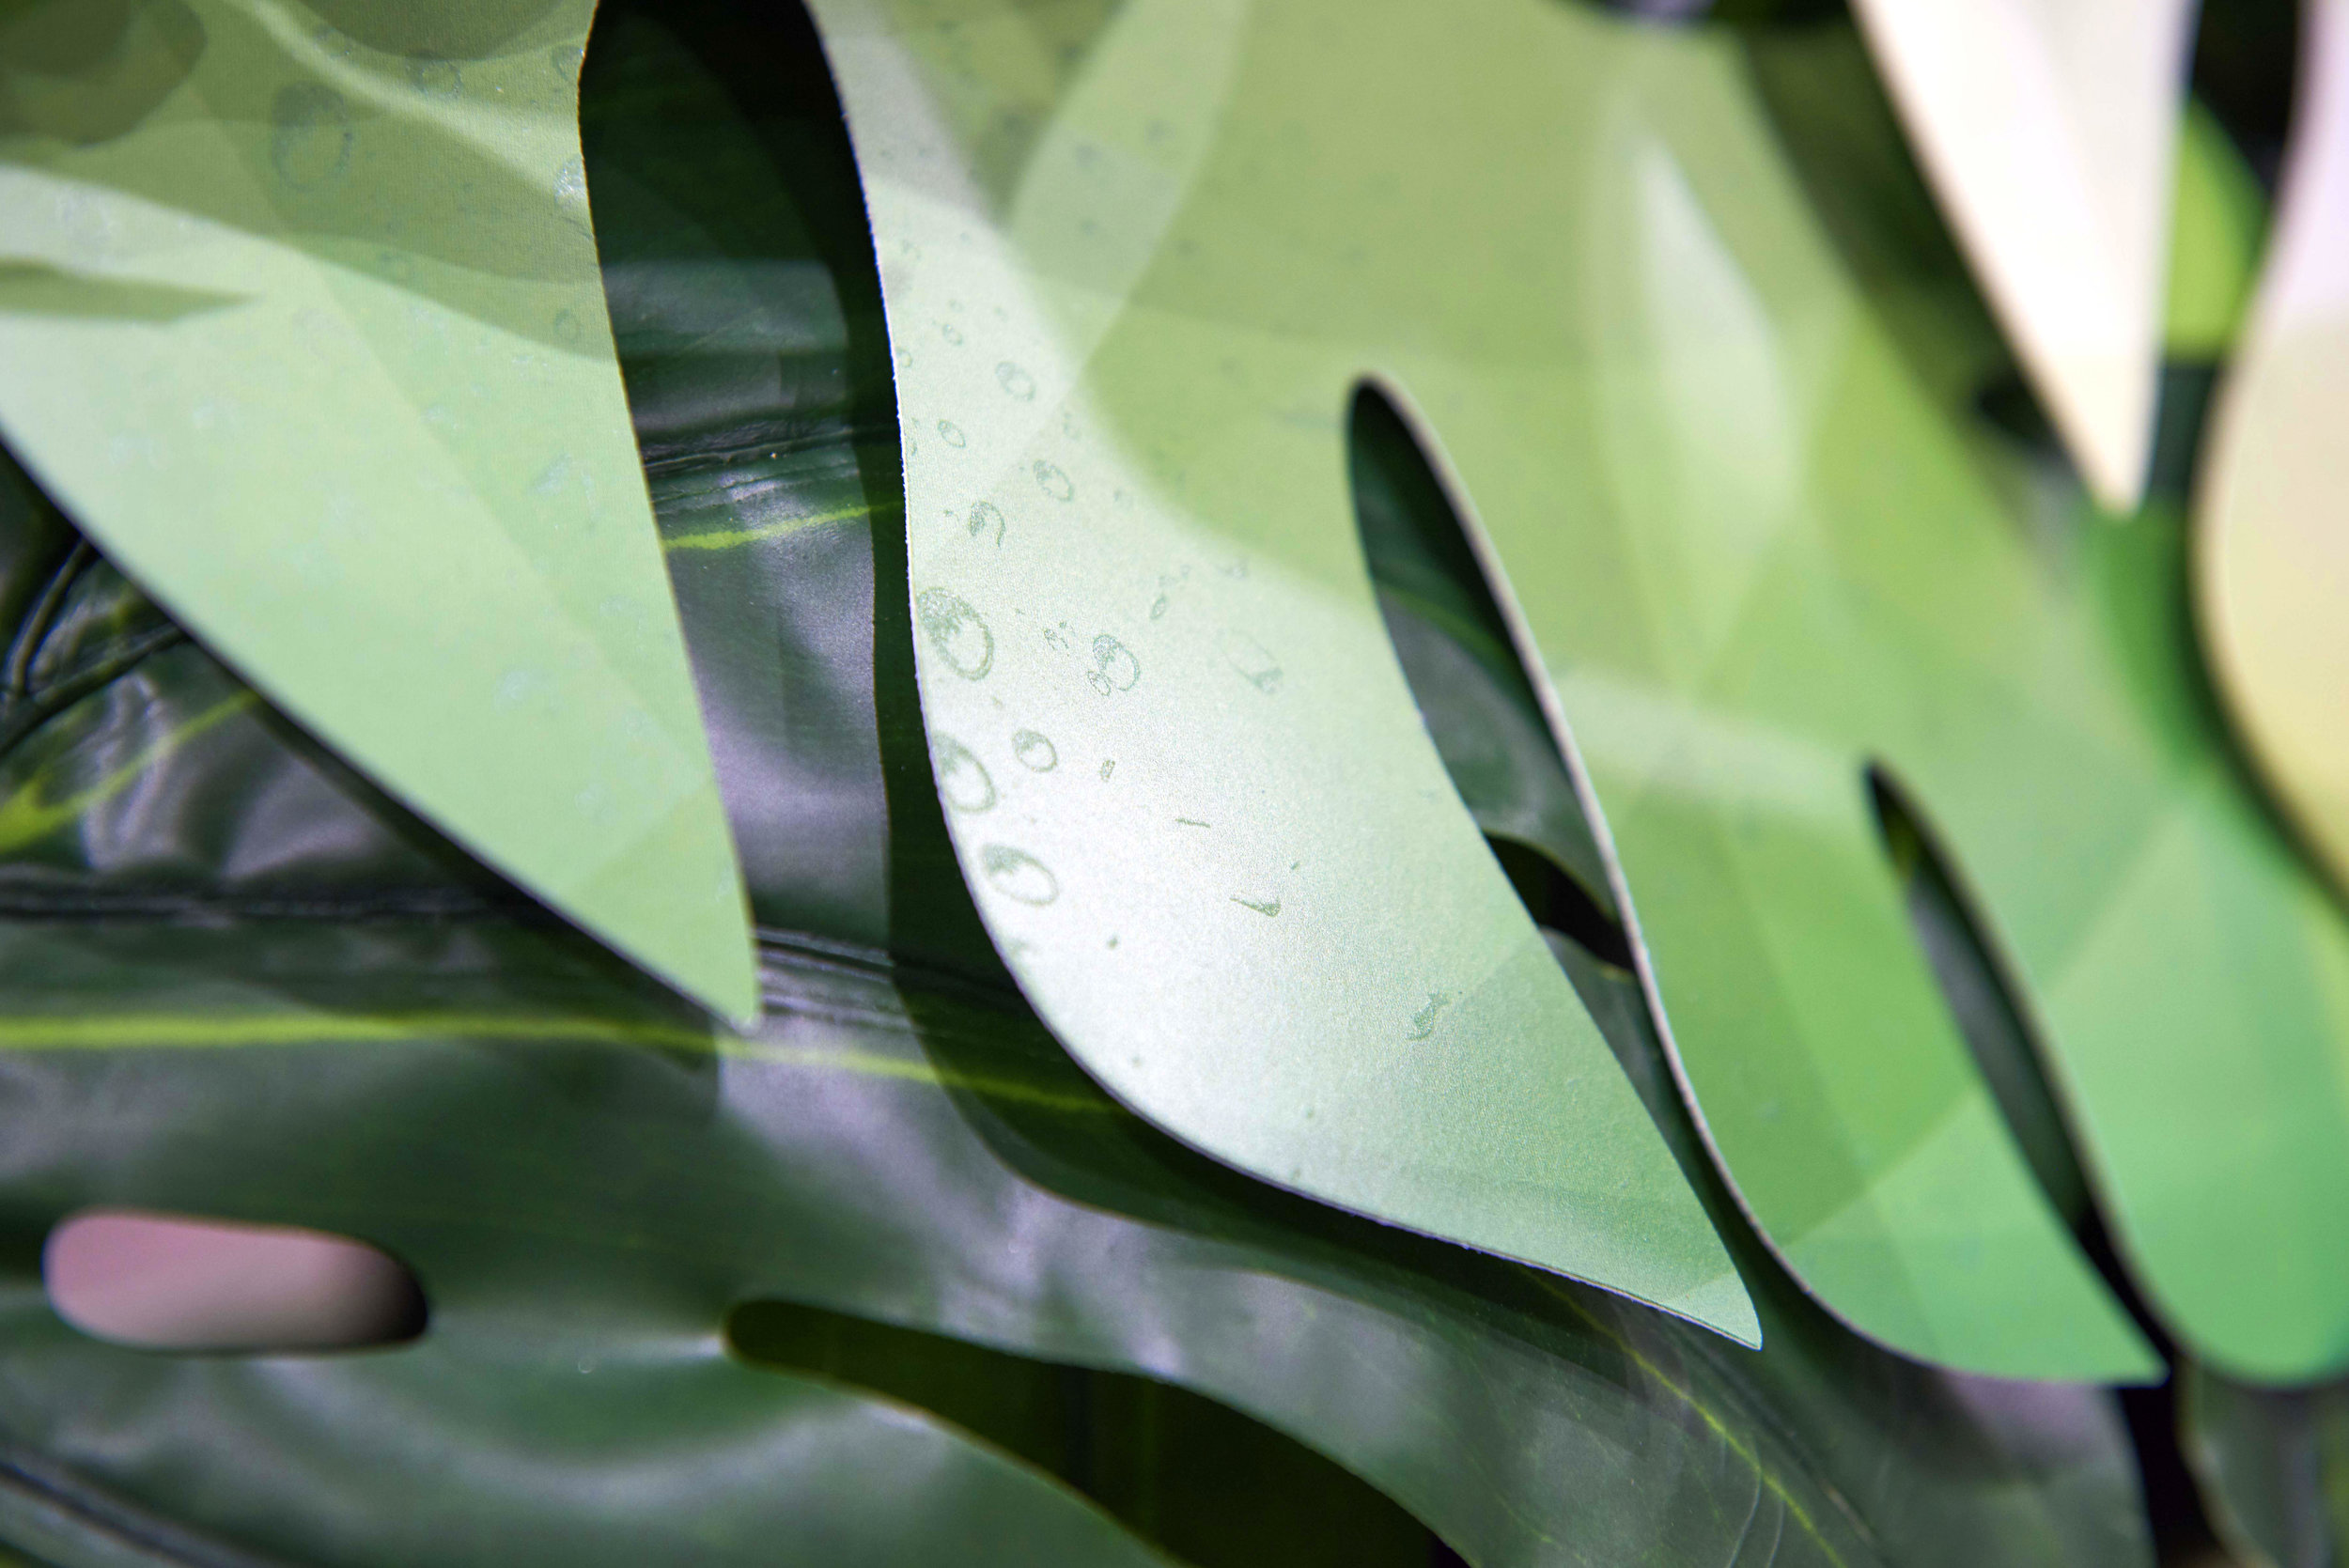 INKLAND_DETAIL_SHOT_LEAVES.jpg